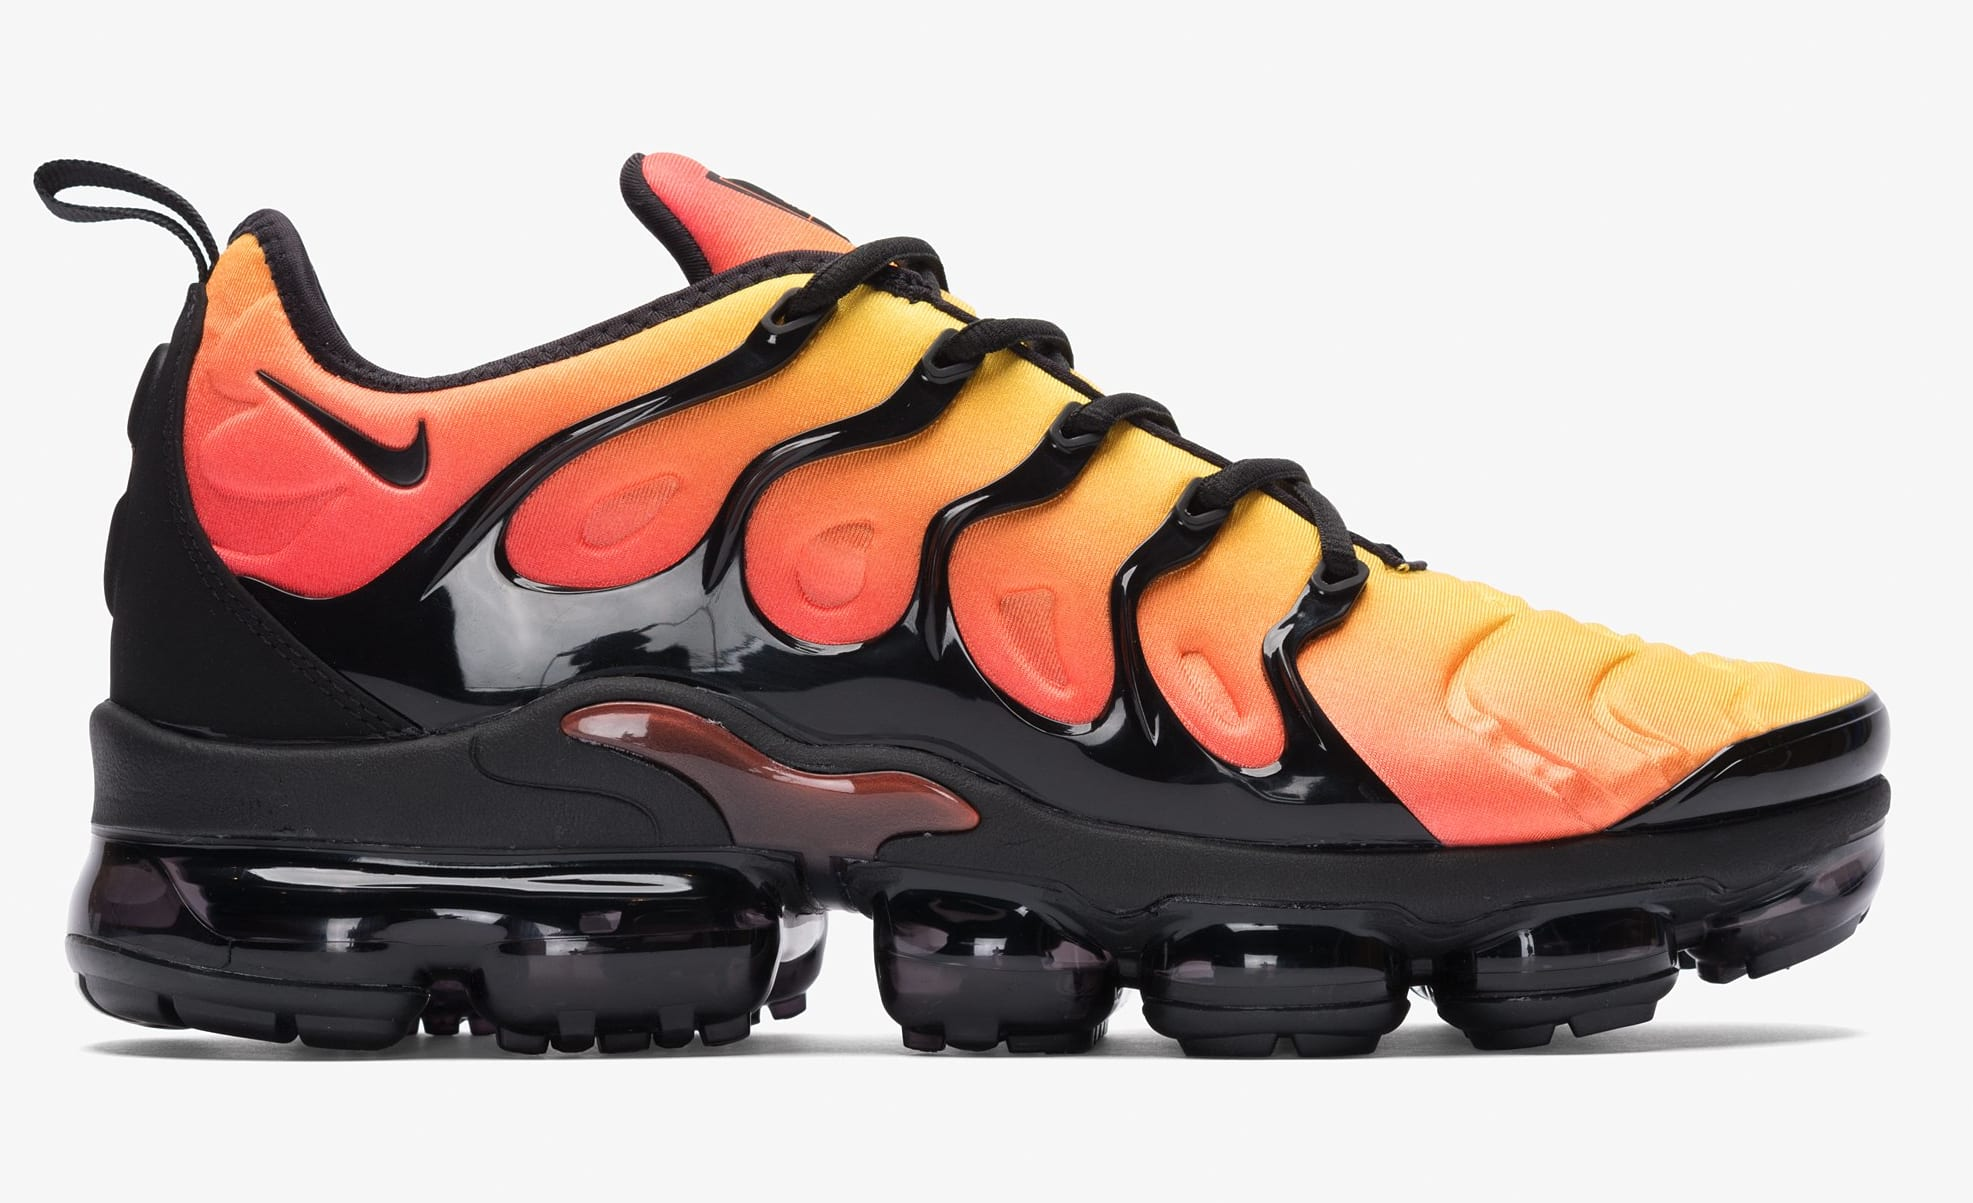 newest dbf80 31206 ... wholesale nike vapormax plus sunset black total orange lateral 13e07  fdab1 ...